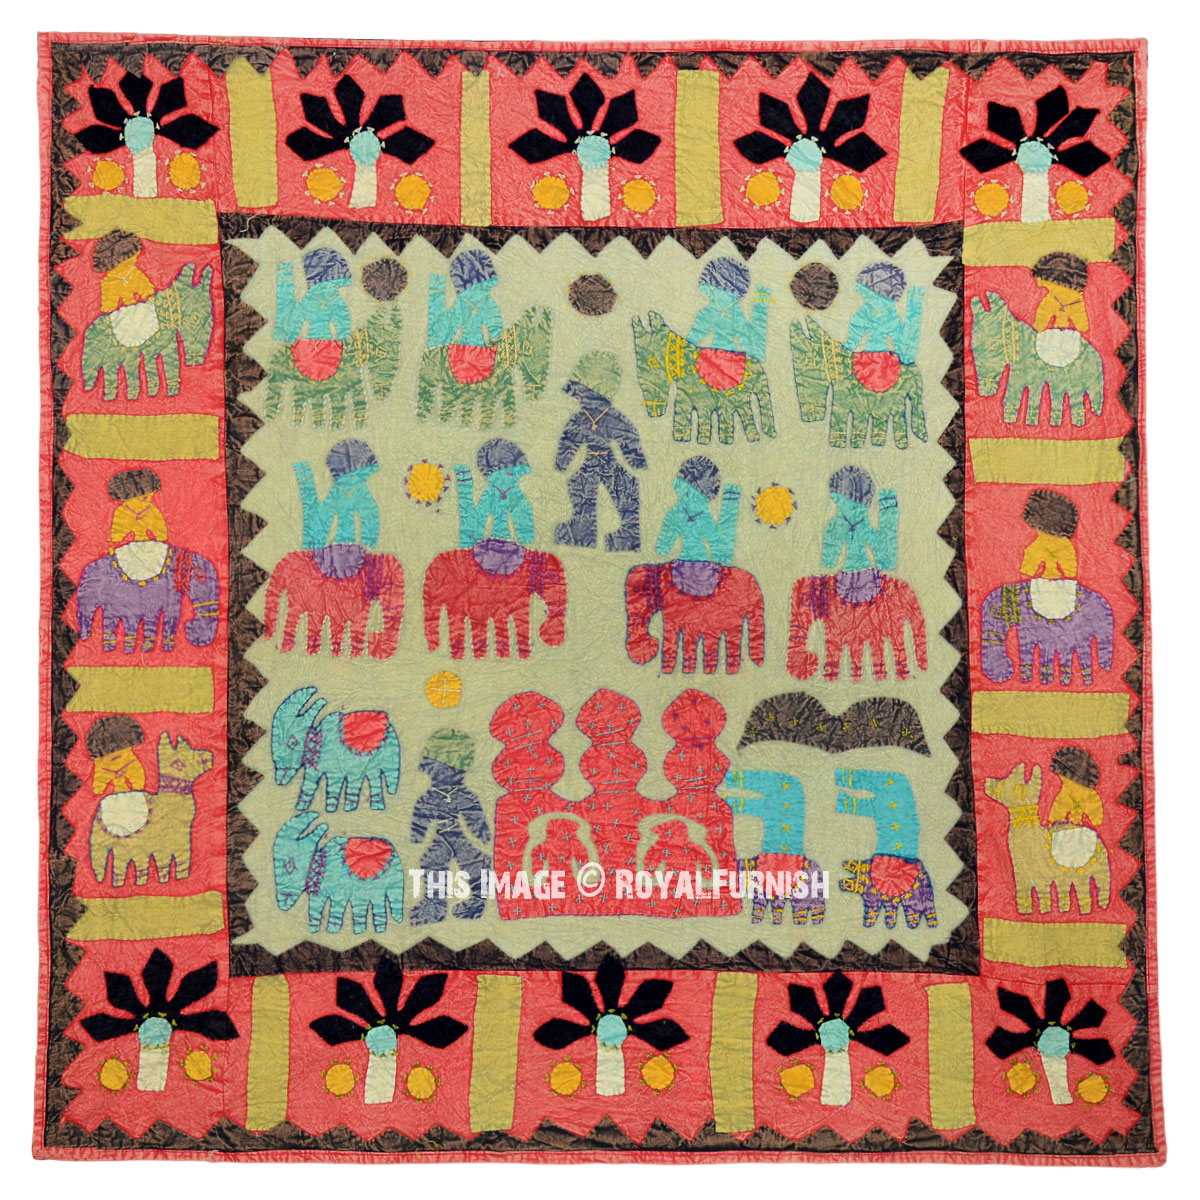 Bohemian Embroidery Patterns Green Indian Multi Patchwork Bohemian Tapestry Wall Hanging Ethnic Decor Art